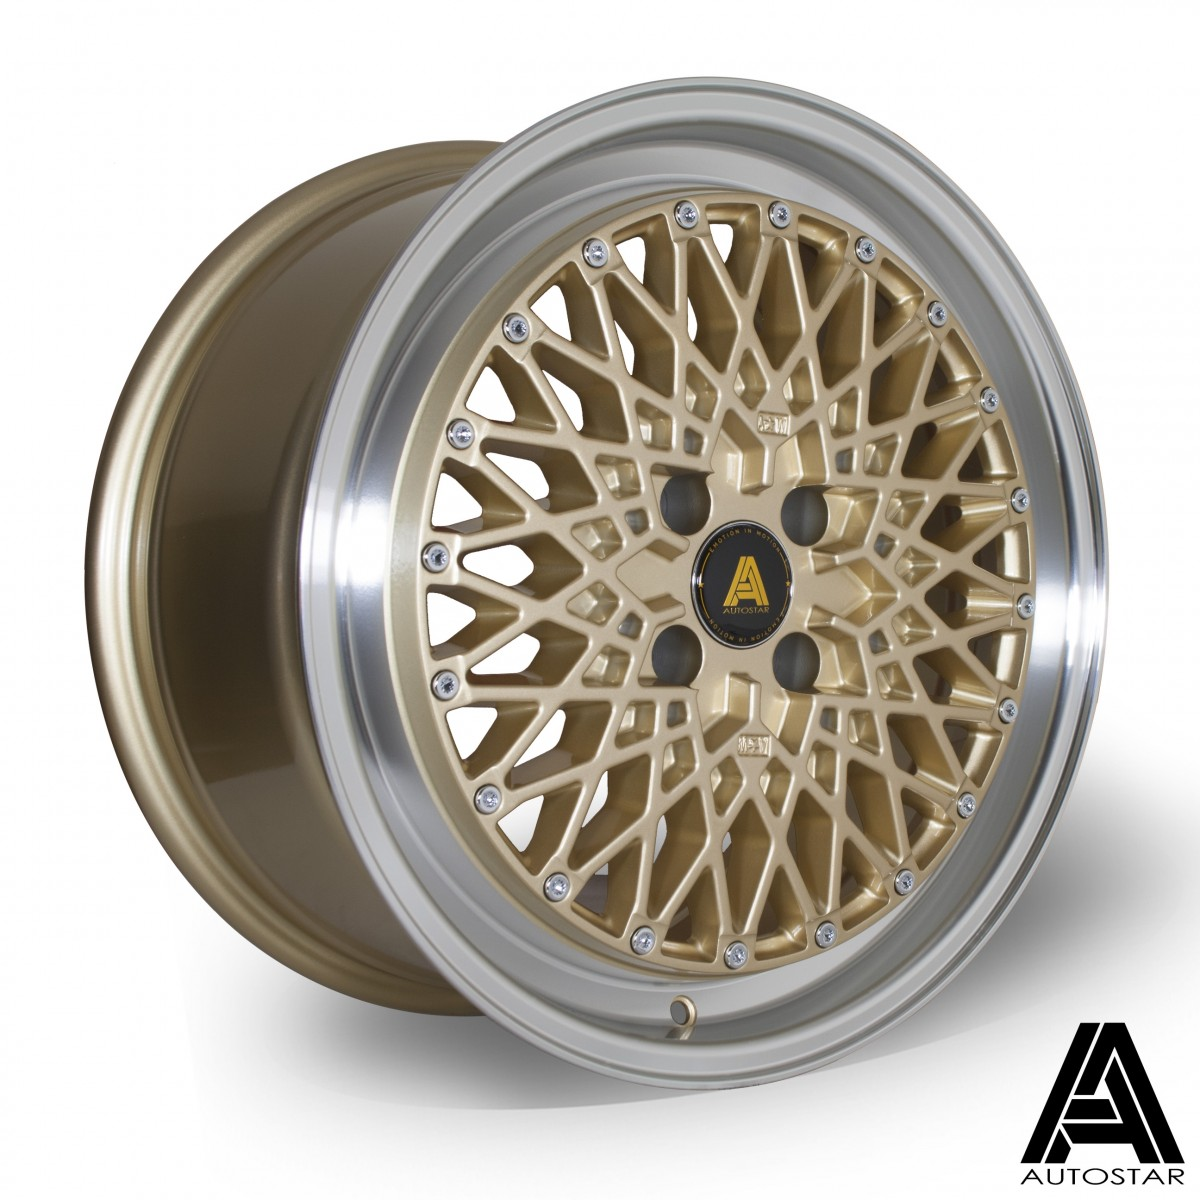 AutoStar Minus 17x8.0 5x112 ET35 Polished with Gold Centre - Set of 4